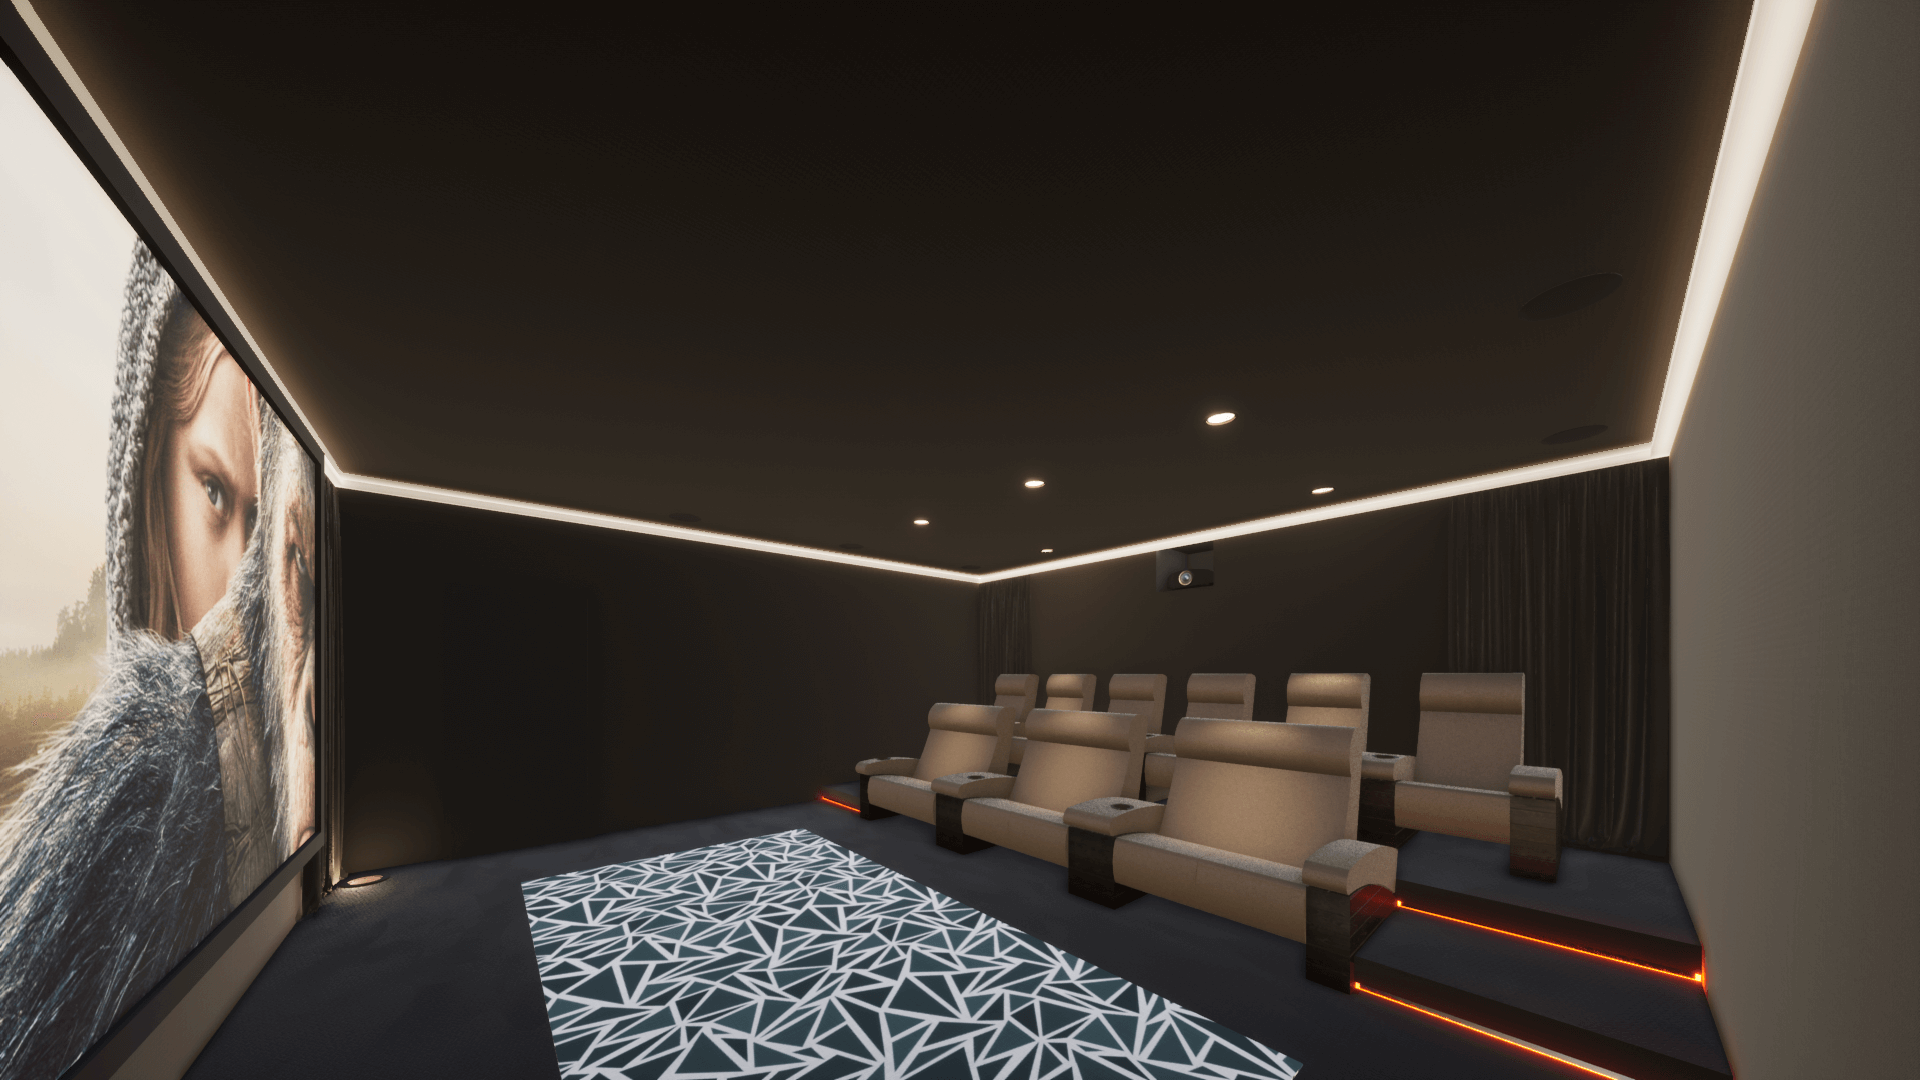 Home Cinema Room in Al Barari, Dubai